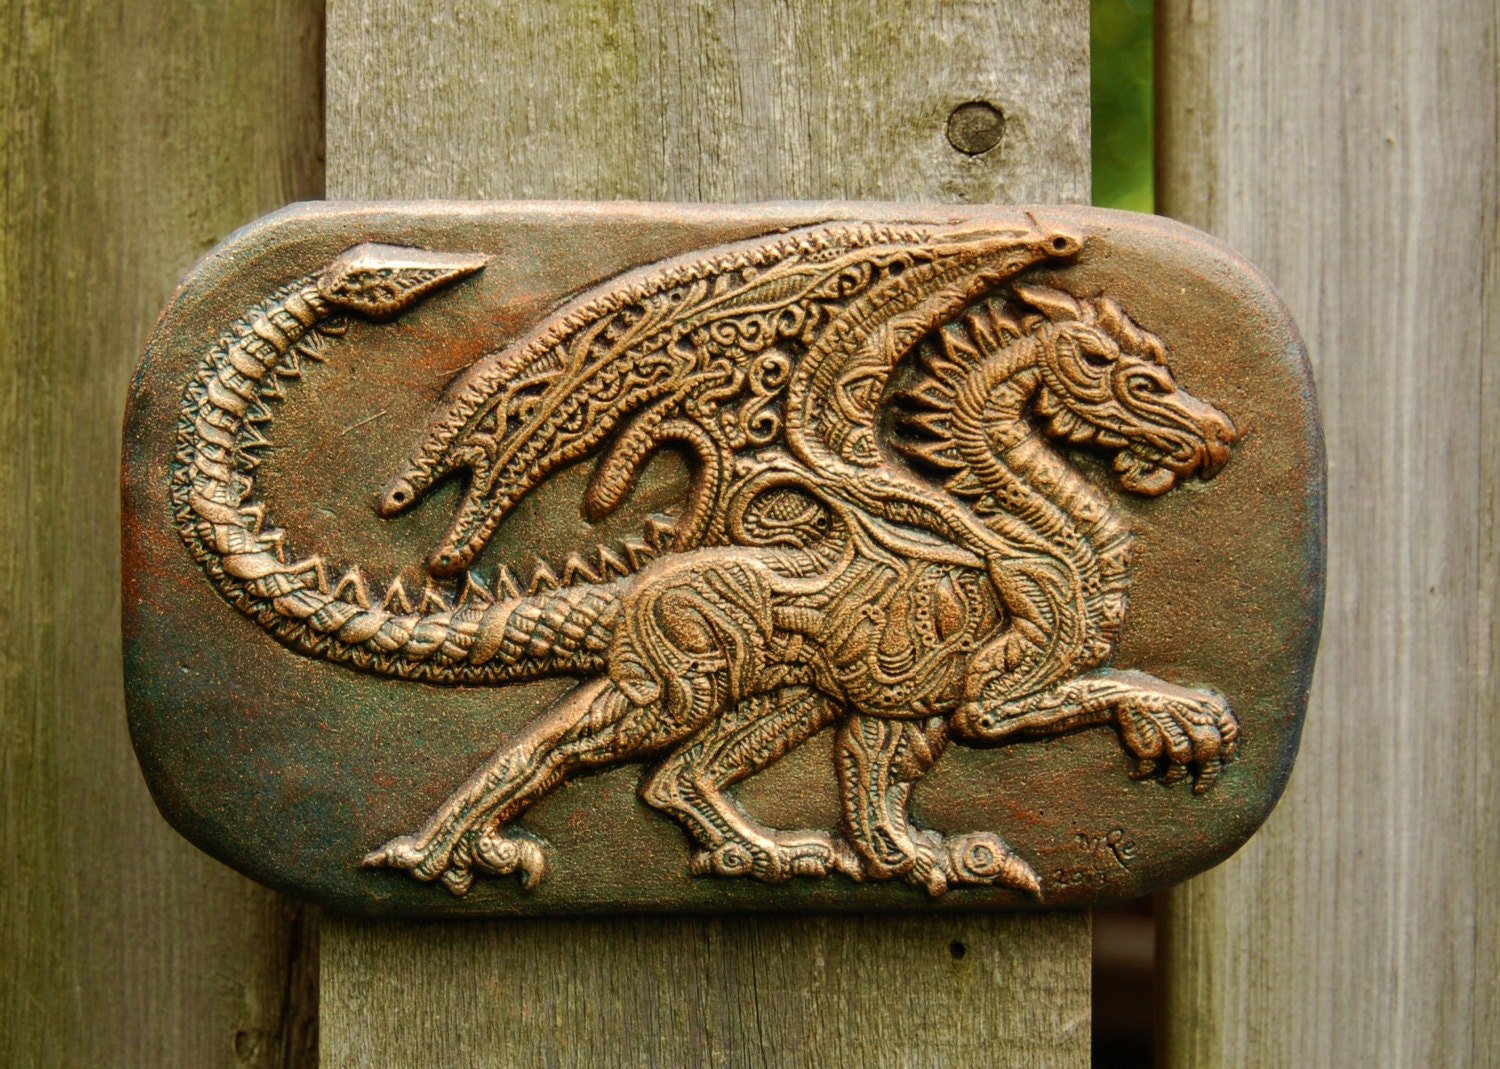 Dragon art winged wall plaque garden stone